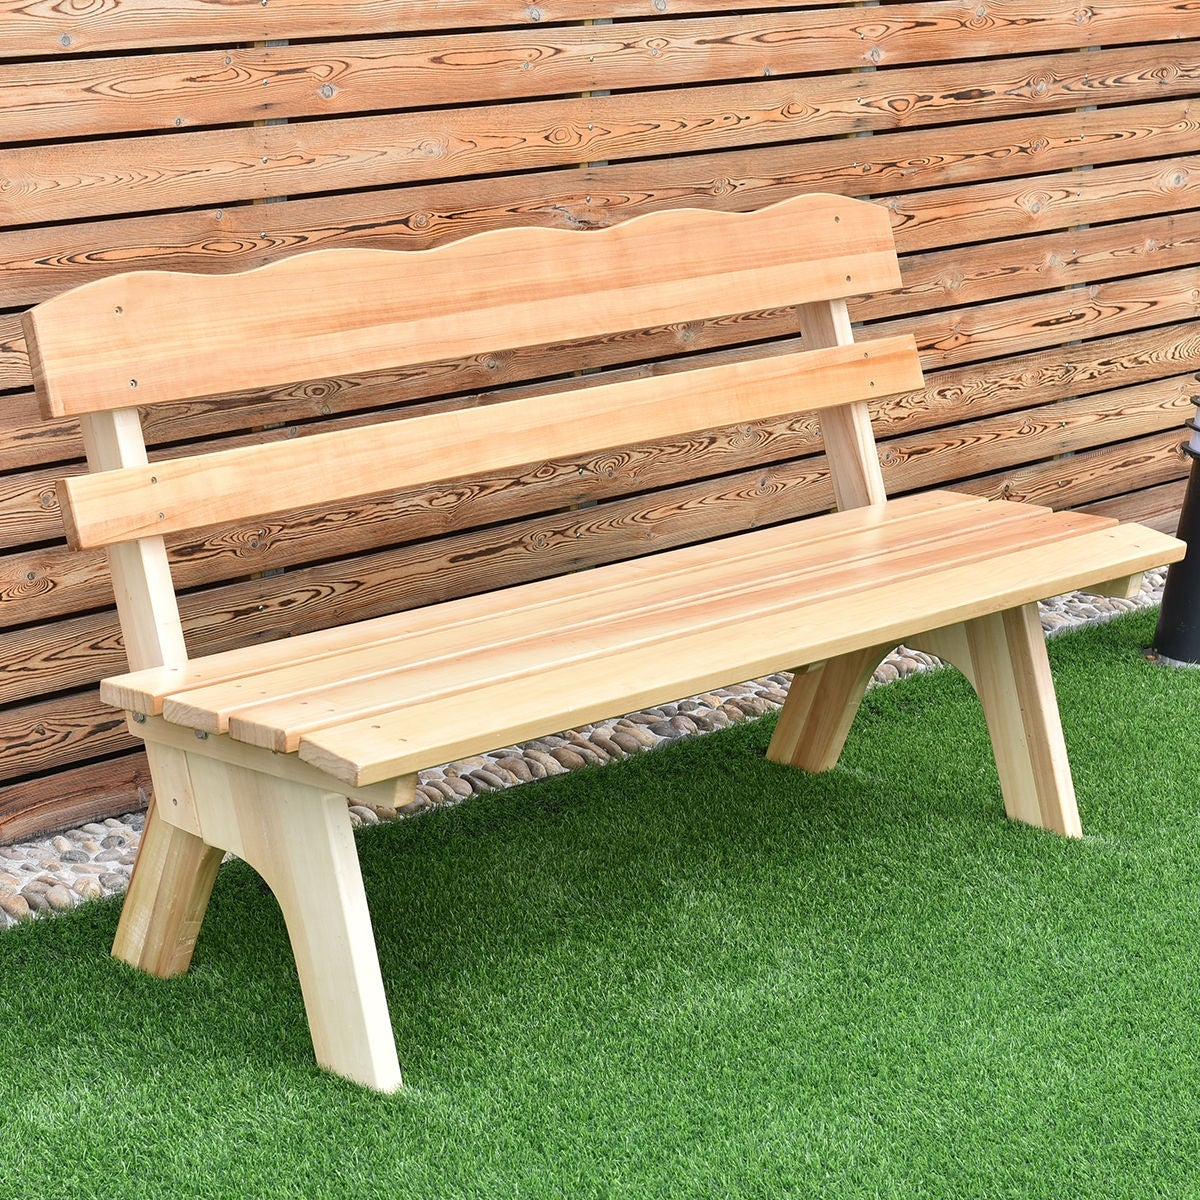 Shop Costway 5 Ft 3 Seats Outdoor Wooden Garden Bench Chair Wood Frame Yard  Deck Furniture   Free Shipping Today   Overstock.com   15943334